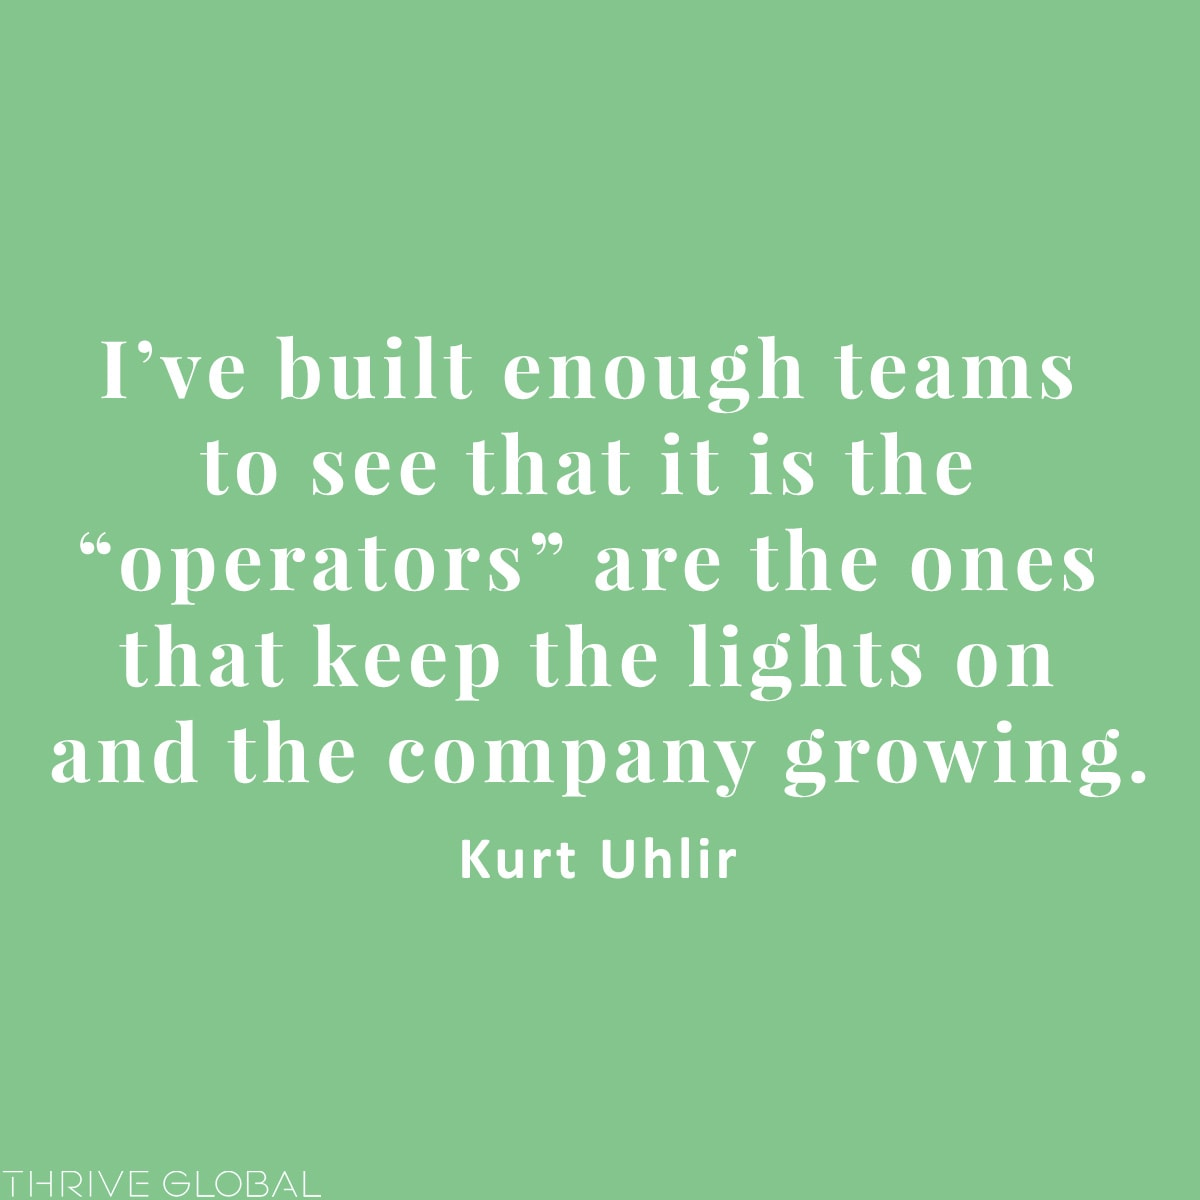 """I've built enough teams to see that it is the """"operators"""" are the ones that keep the lights on and the company growing."""